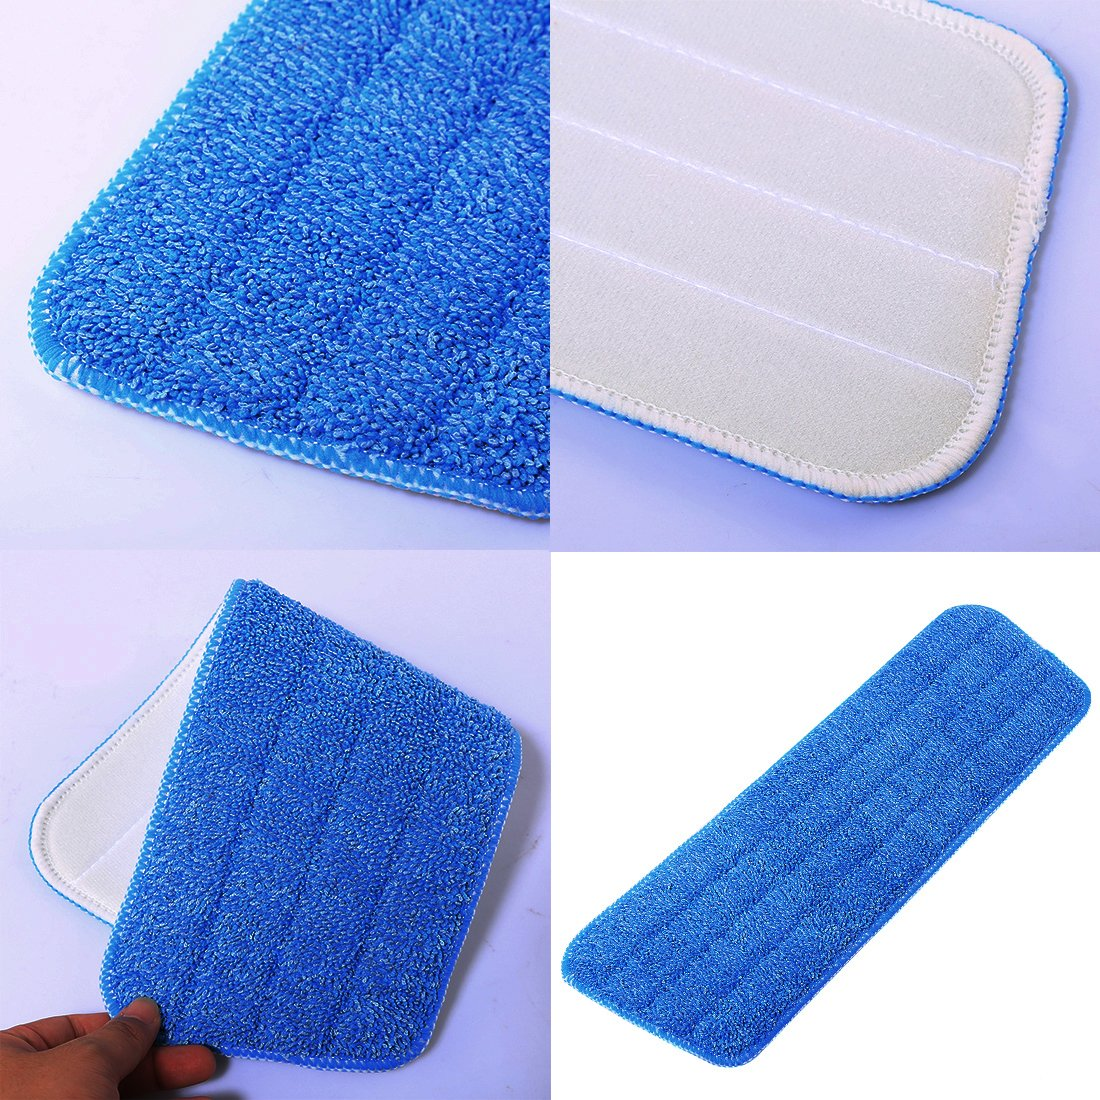 Microfiber Mop Pads, Yamix Set of 10 Hardwood and Floor Microfiber Spray Mop Pads Cleaning Pad Mop Refill Replacement Heads for Wet/Dry Mops,Spray and Spin Magic Mop - Blue by Yamix (Image #4)